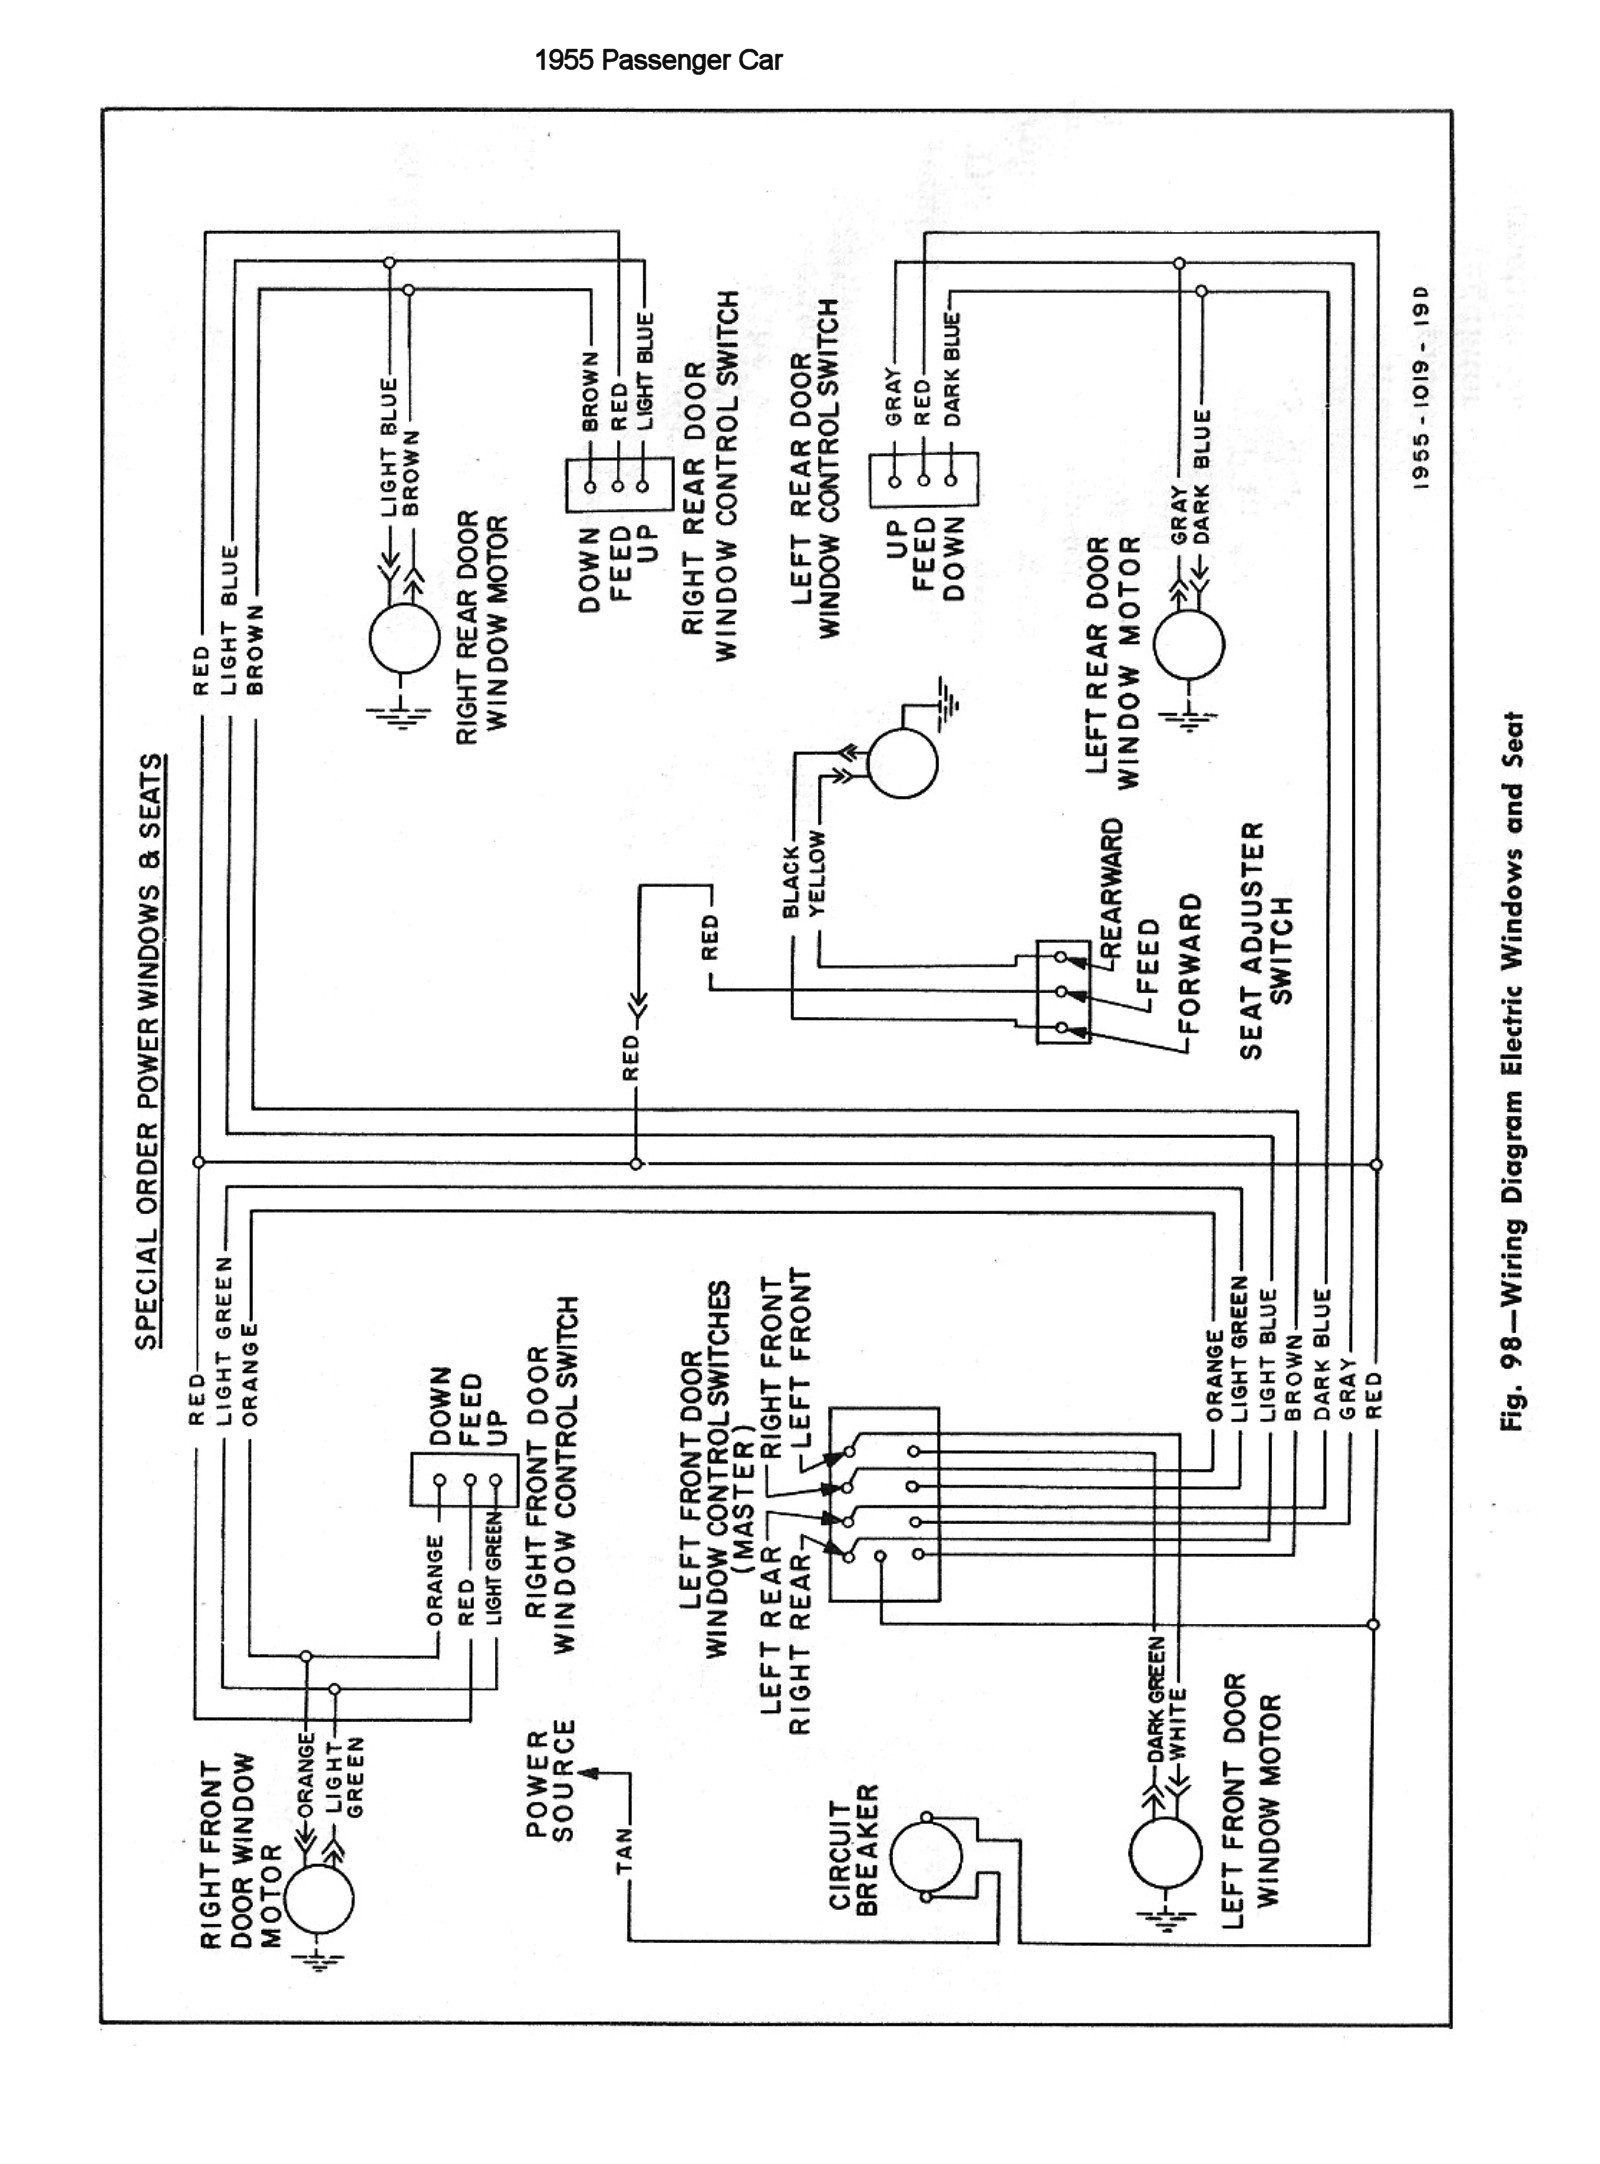 small resolution of 1955 ford turn signal wiring diagram wiring diagram for you 1955 chevy turn signal wiring diagram